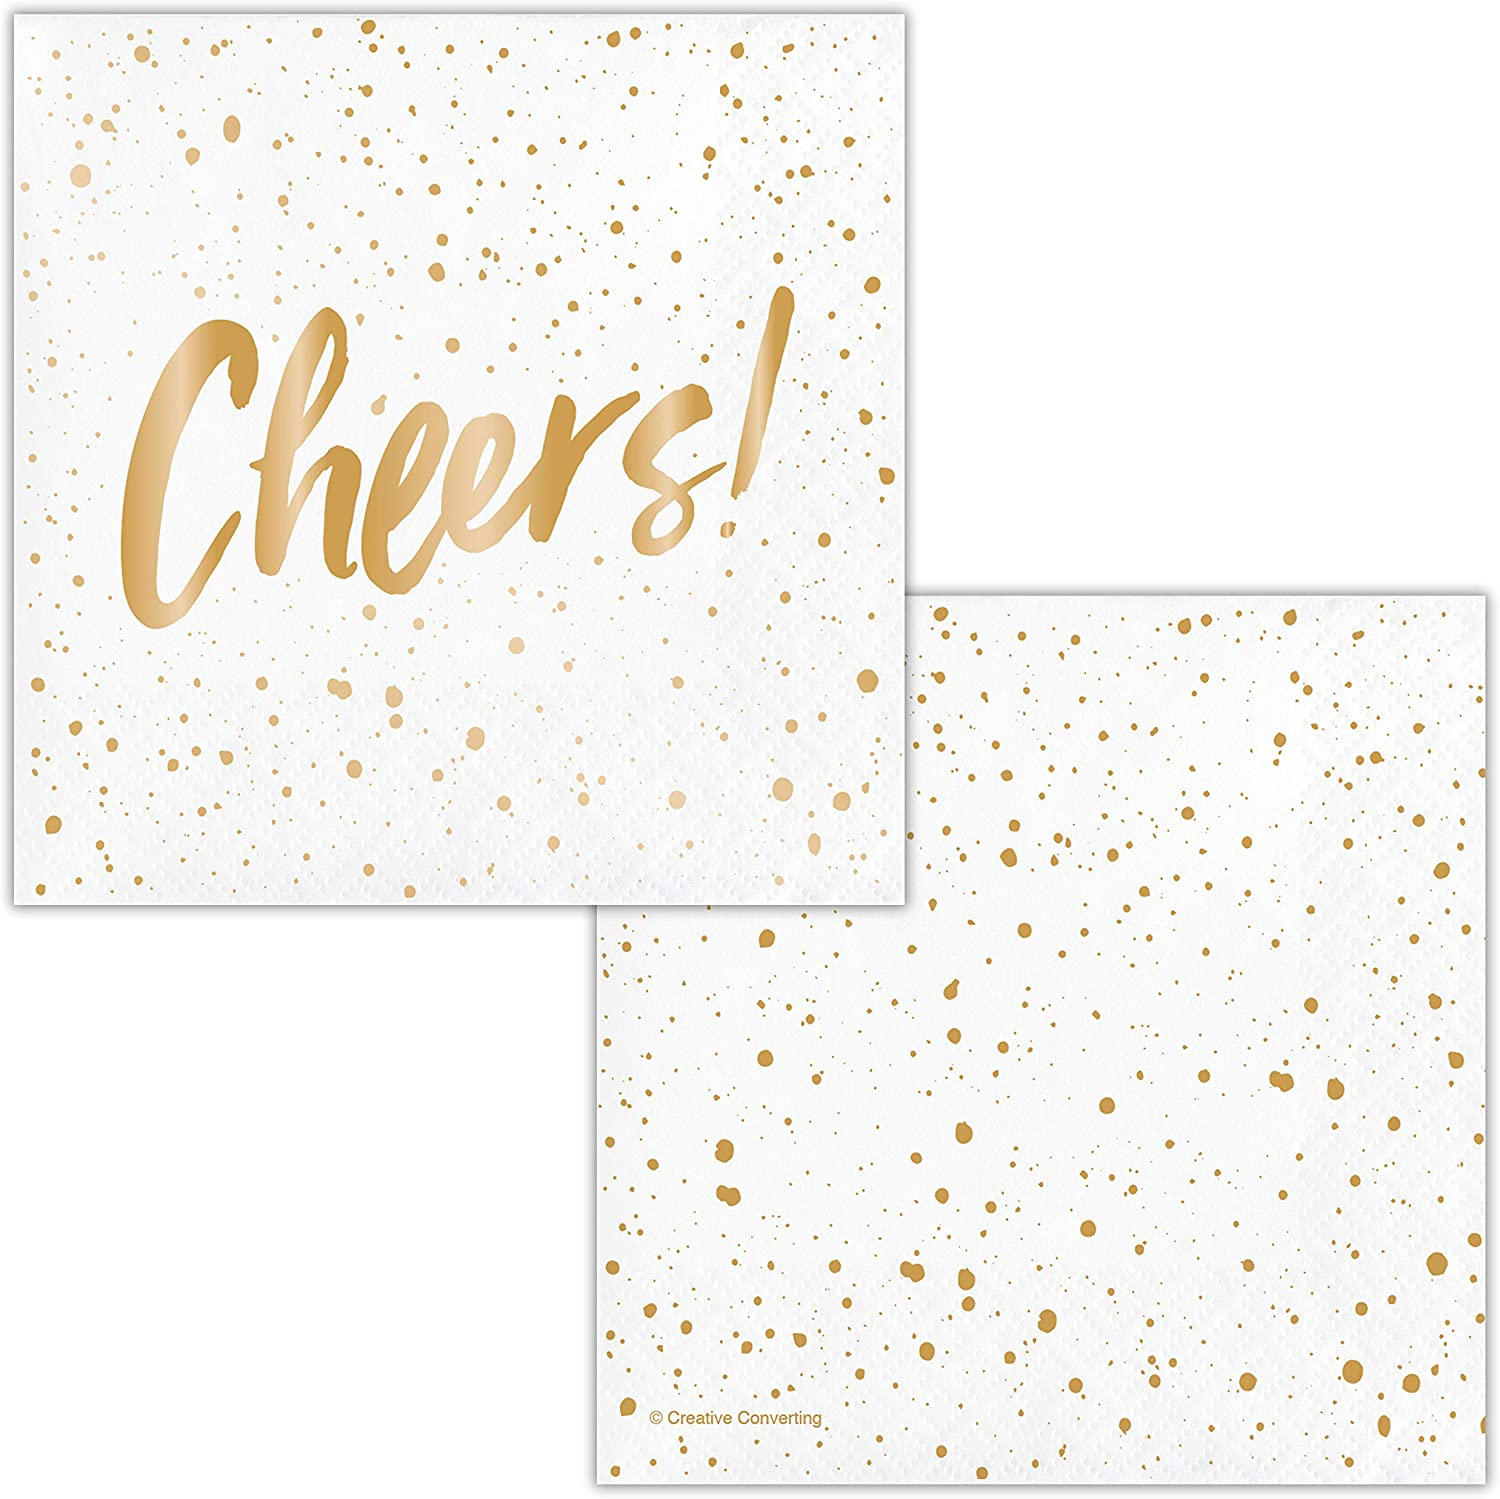 Cheers Gold Foil Beverage Napkins by Elise, 48 ct